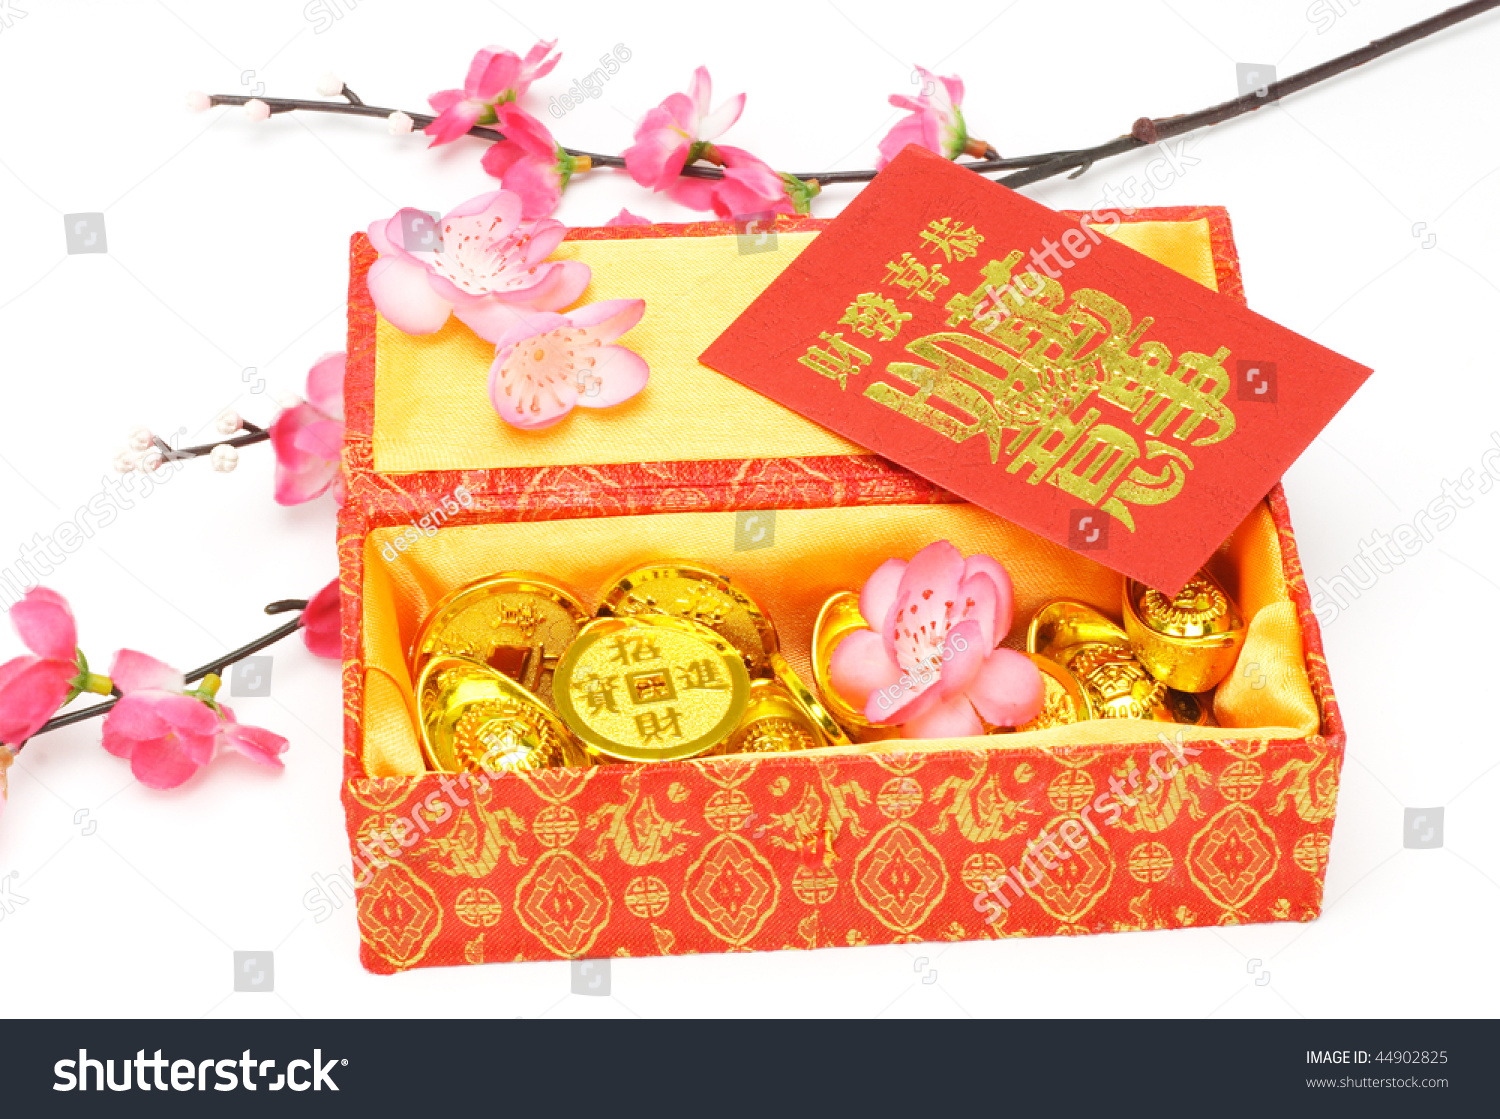 chinese new year gift box red packets and ornaments on white background - Gifts For Chinese New Year